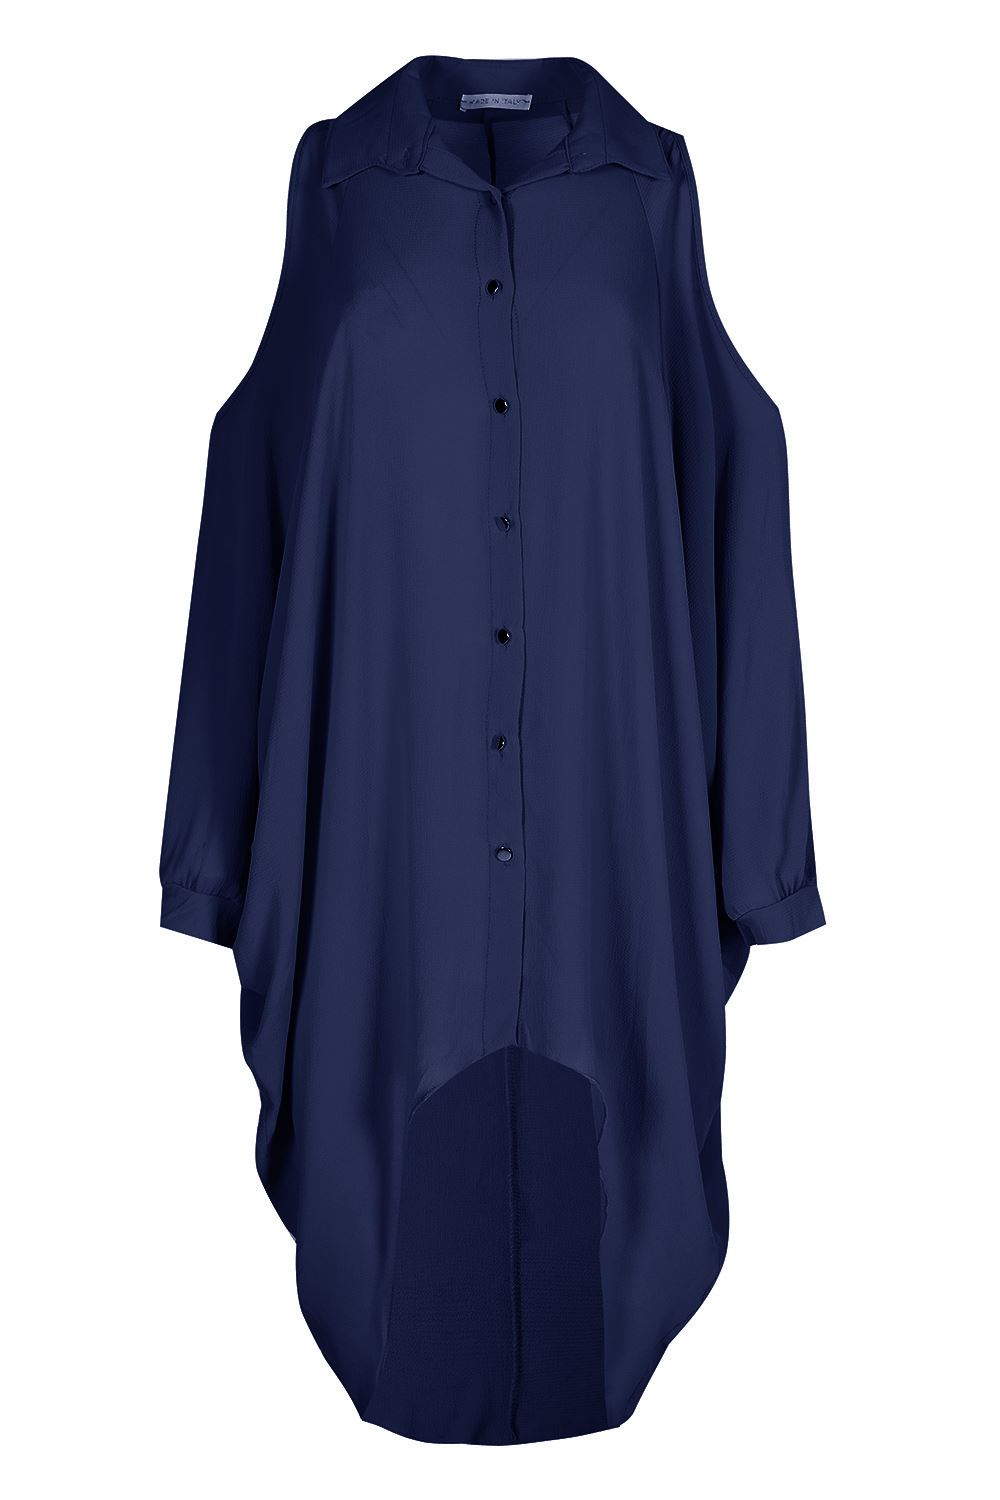 Find womens baggy shirt at ShopStyle. Shop the latest collection of womens baggy shirt from the most popular stores - all in one place.